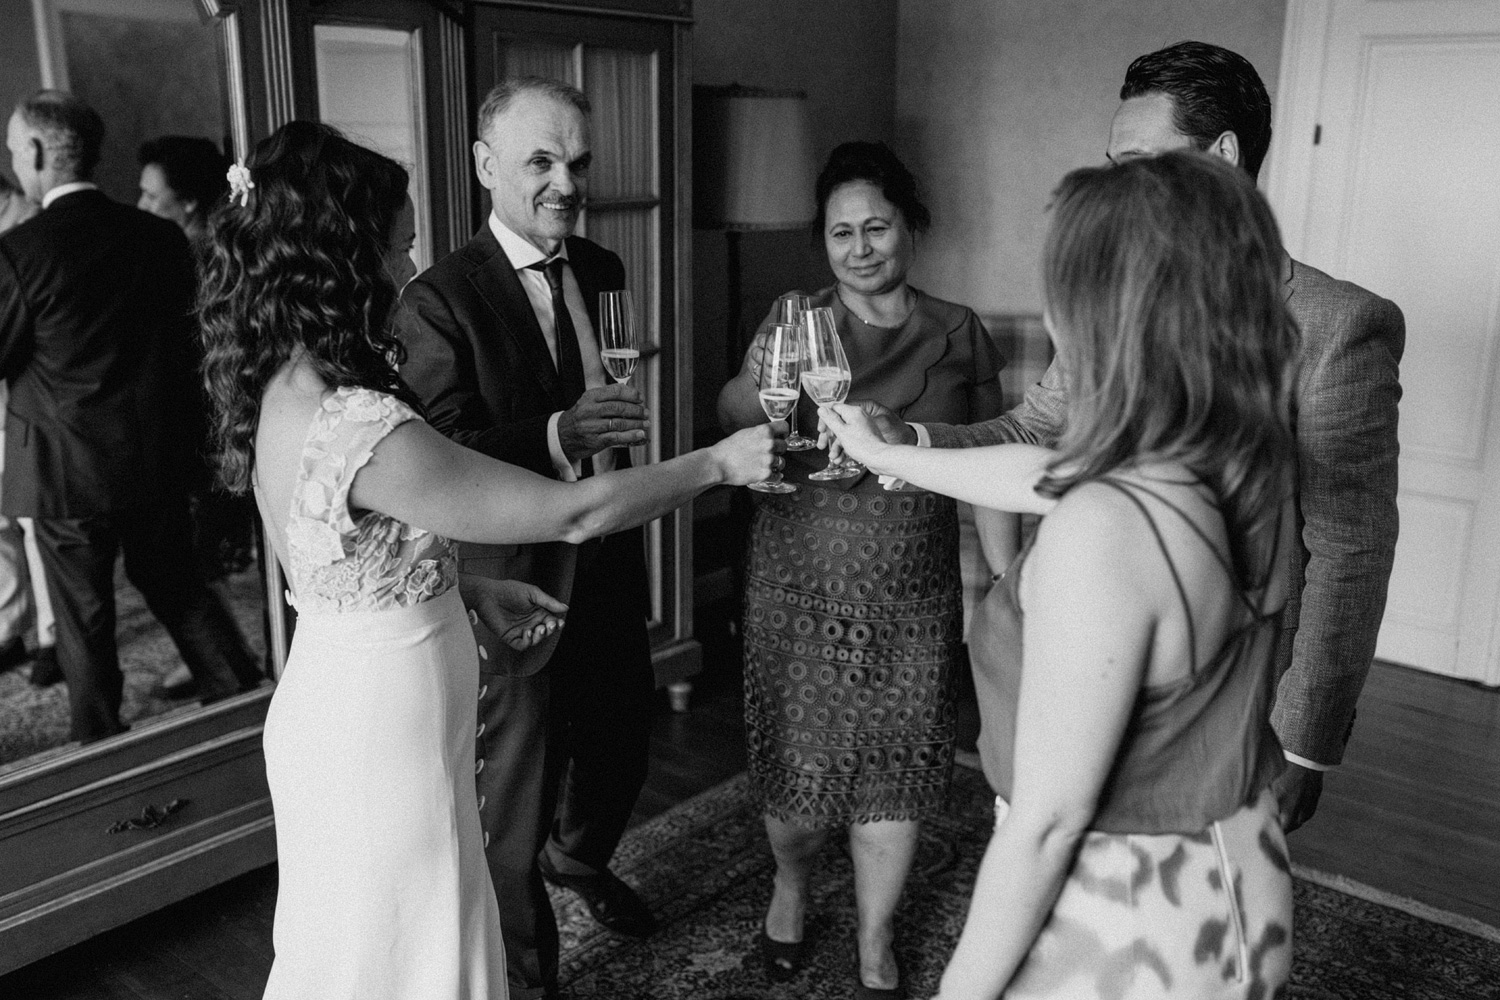 Bride drinking champagne with friends and family